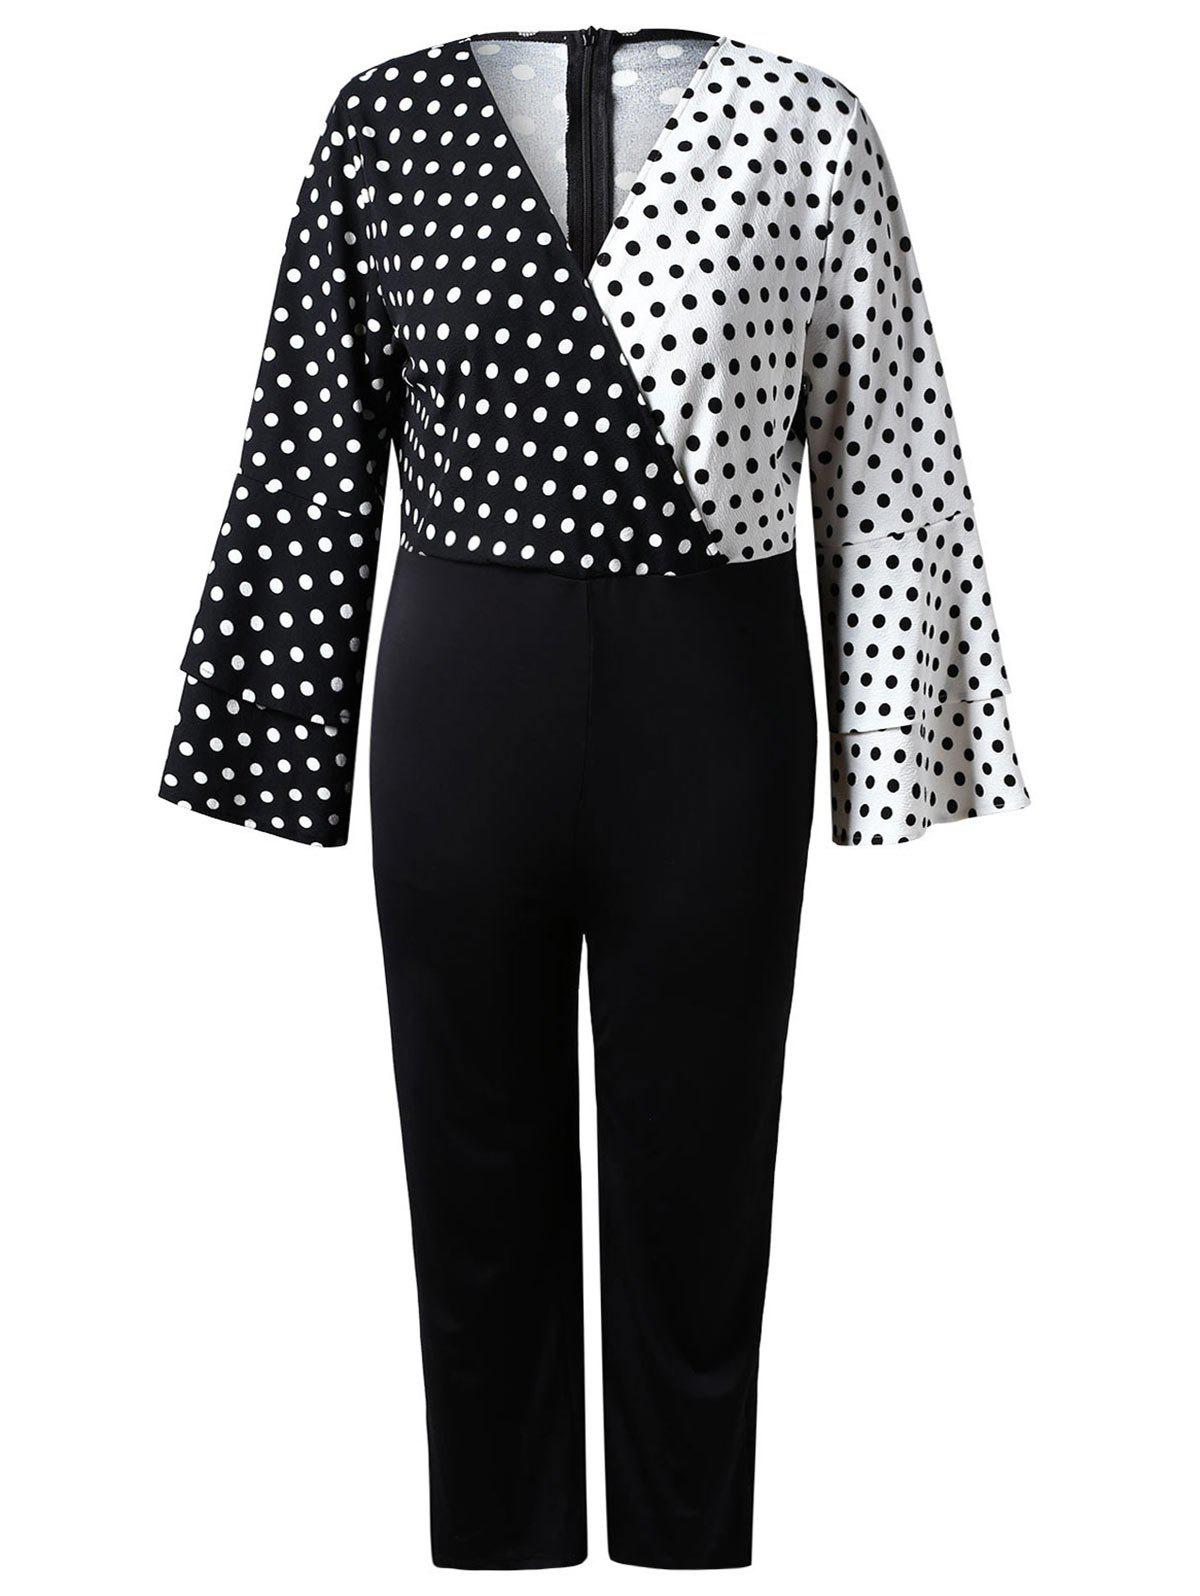 Chic Plus Size Contrast Dotted Jumpsuit